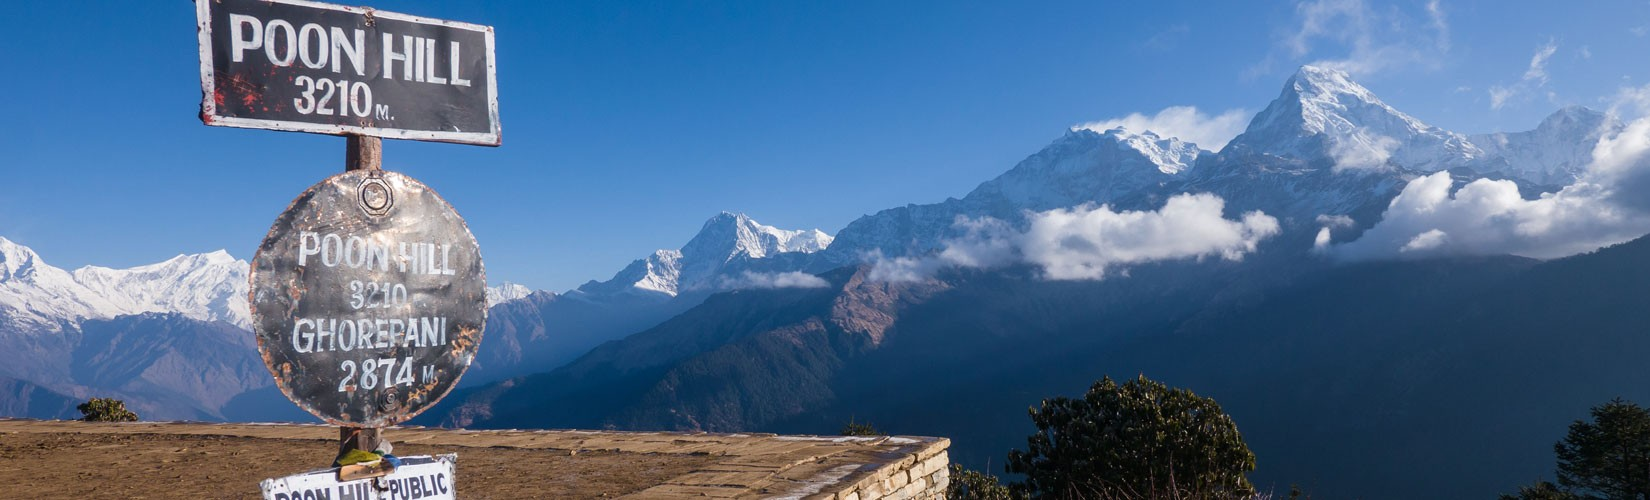 View of Ghorepani from Poon hill,This trek is also known as Annapurna Sunrise Trek.